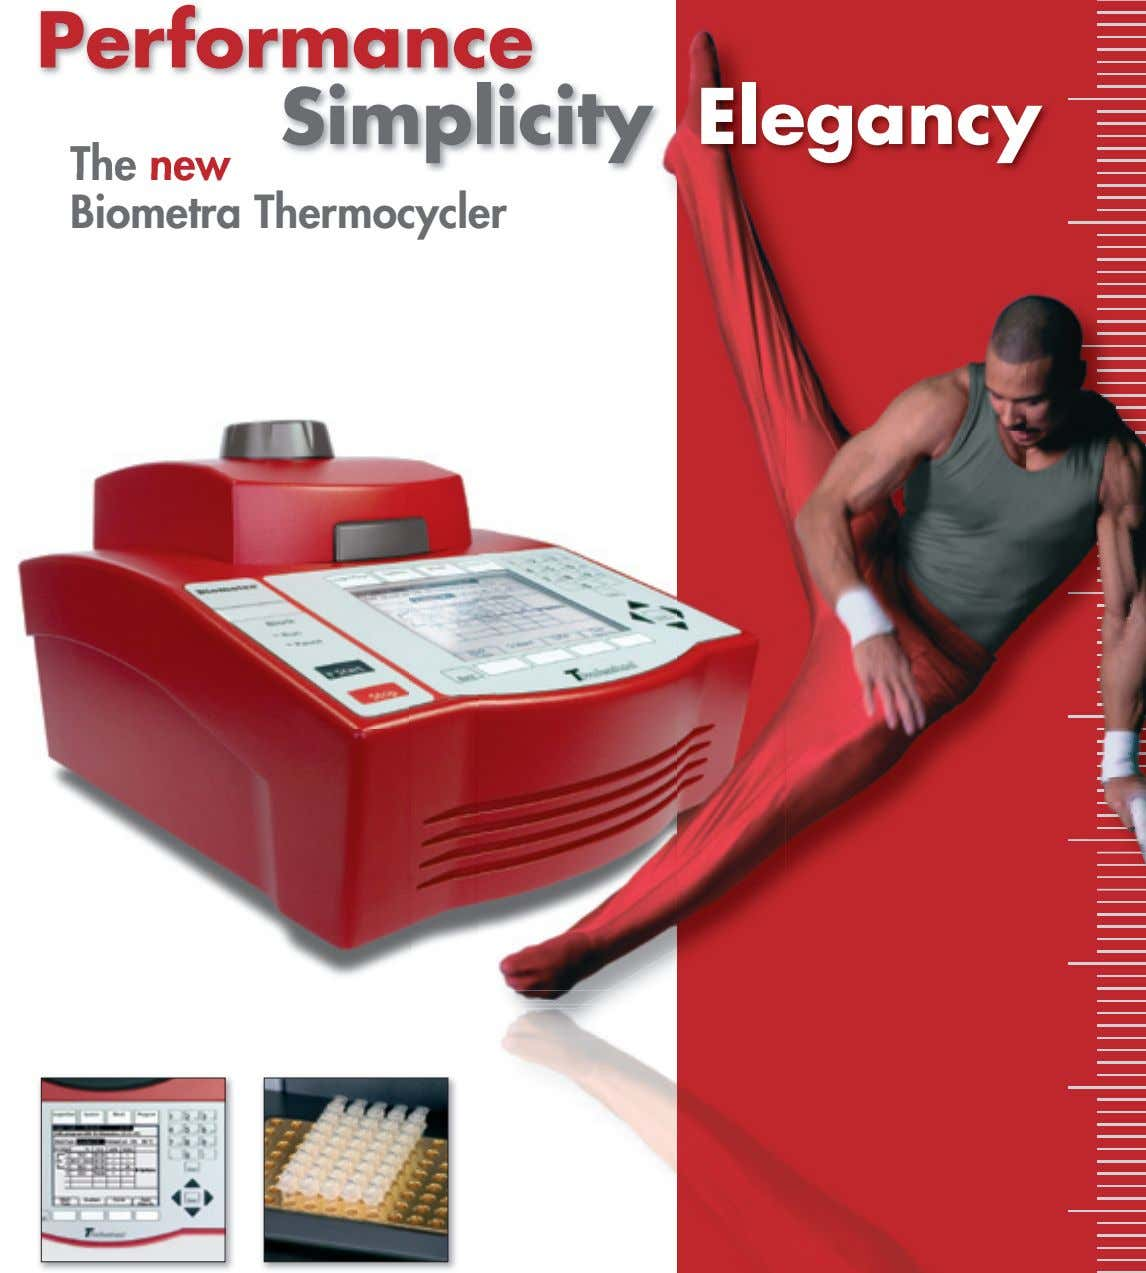 Performance Simplicity Elegancy The new The new Biometra Thermocycler